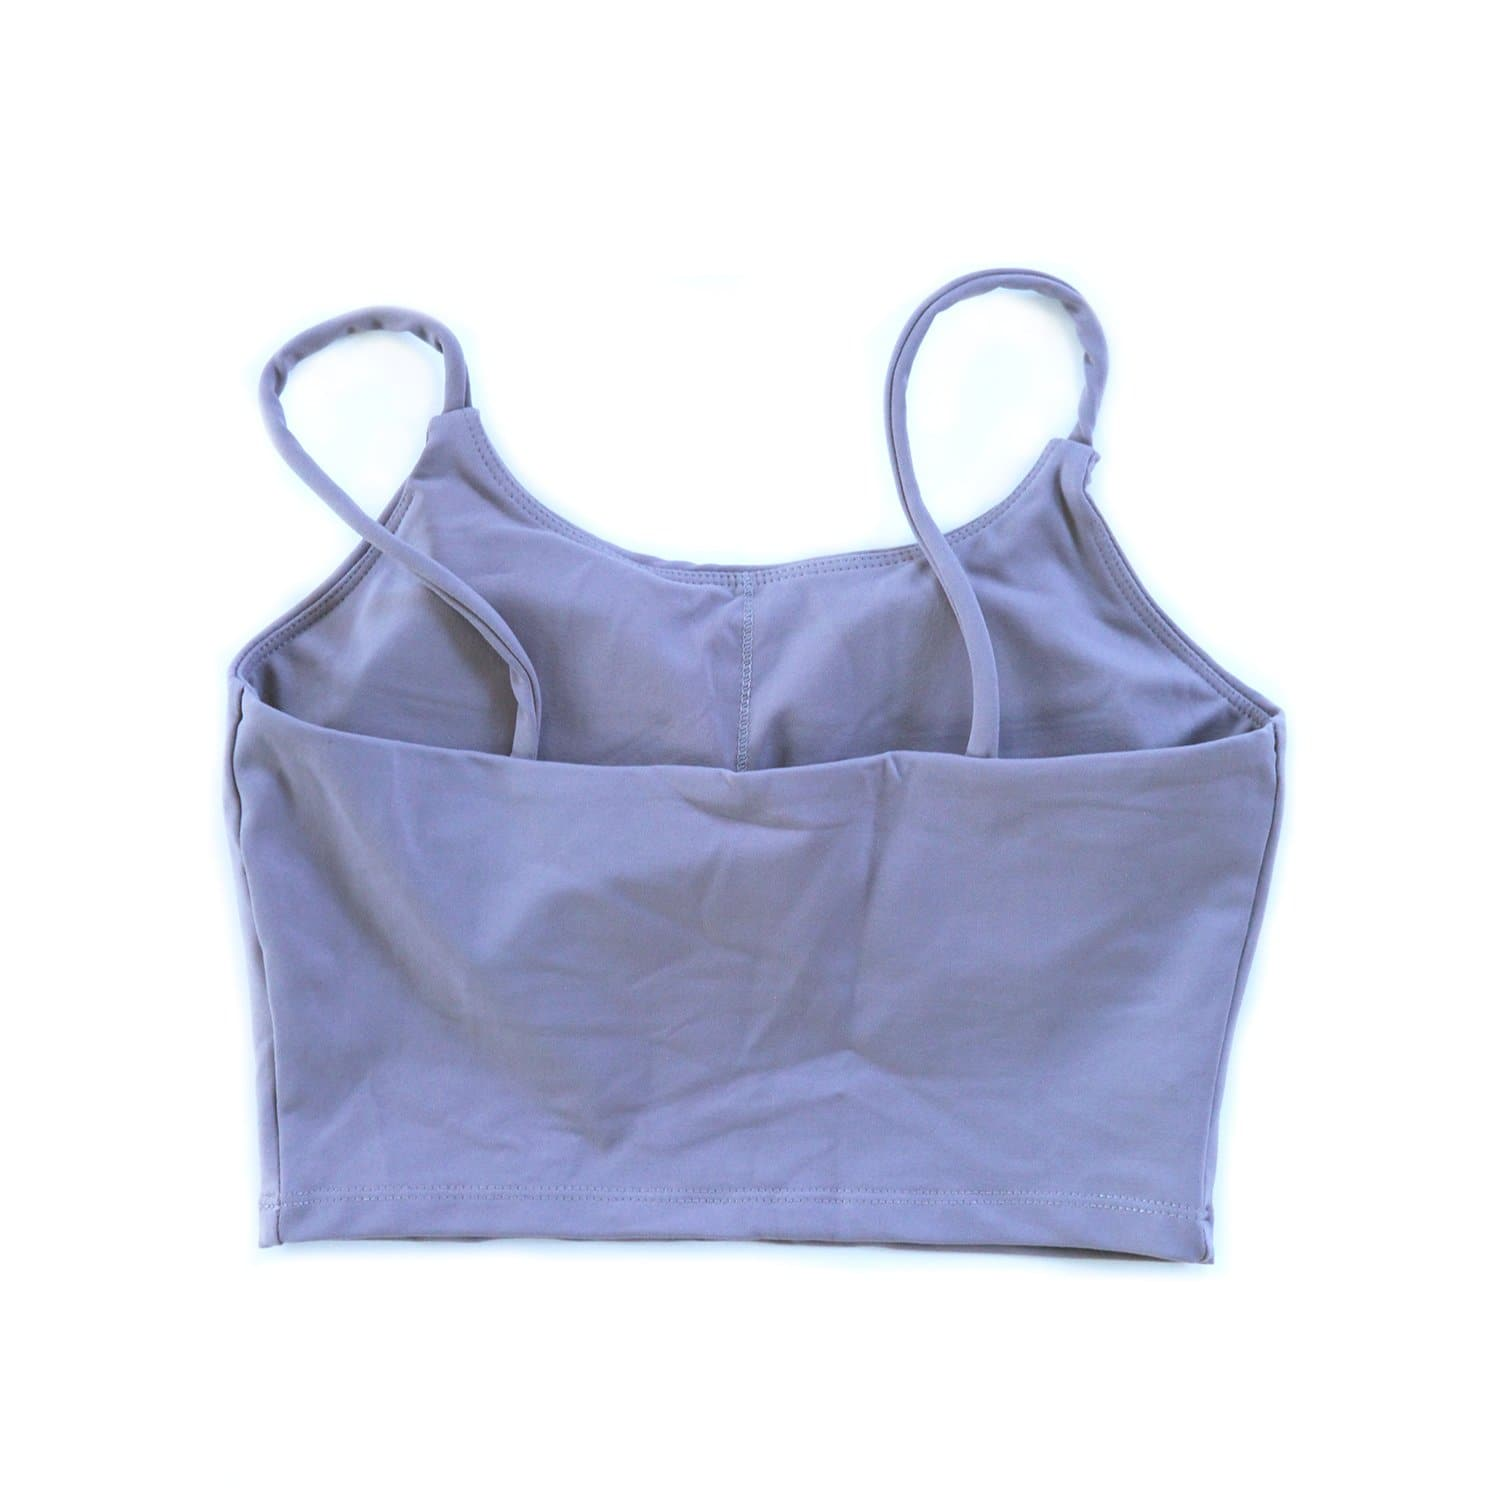 String Crop Top Bra - Dawn Gray